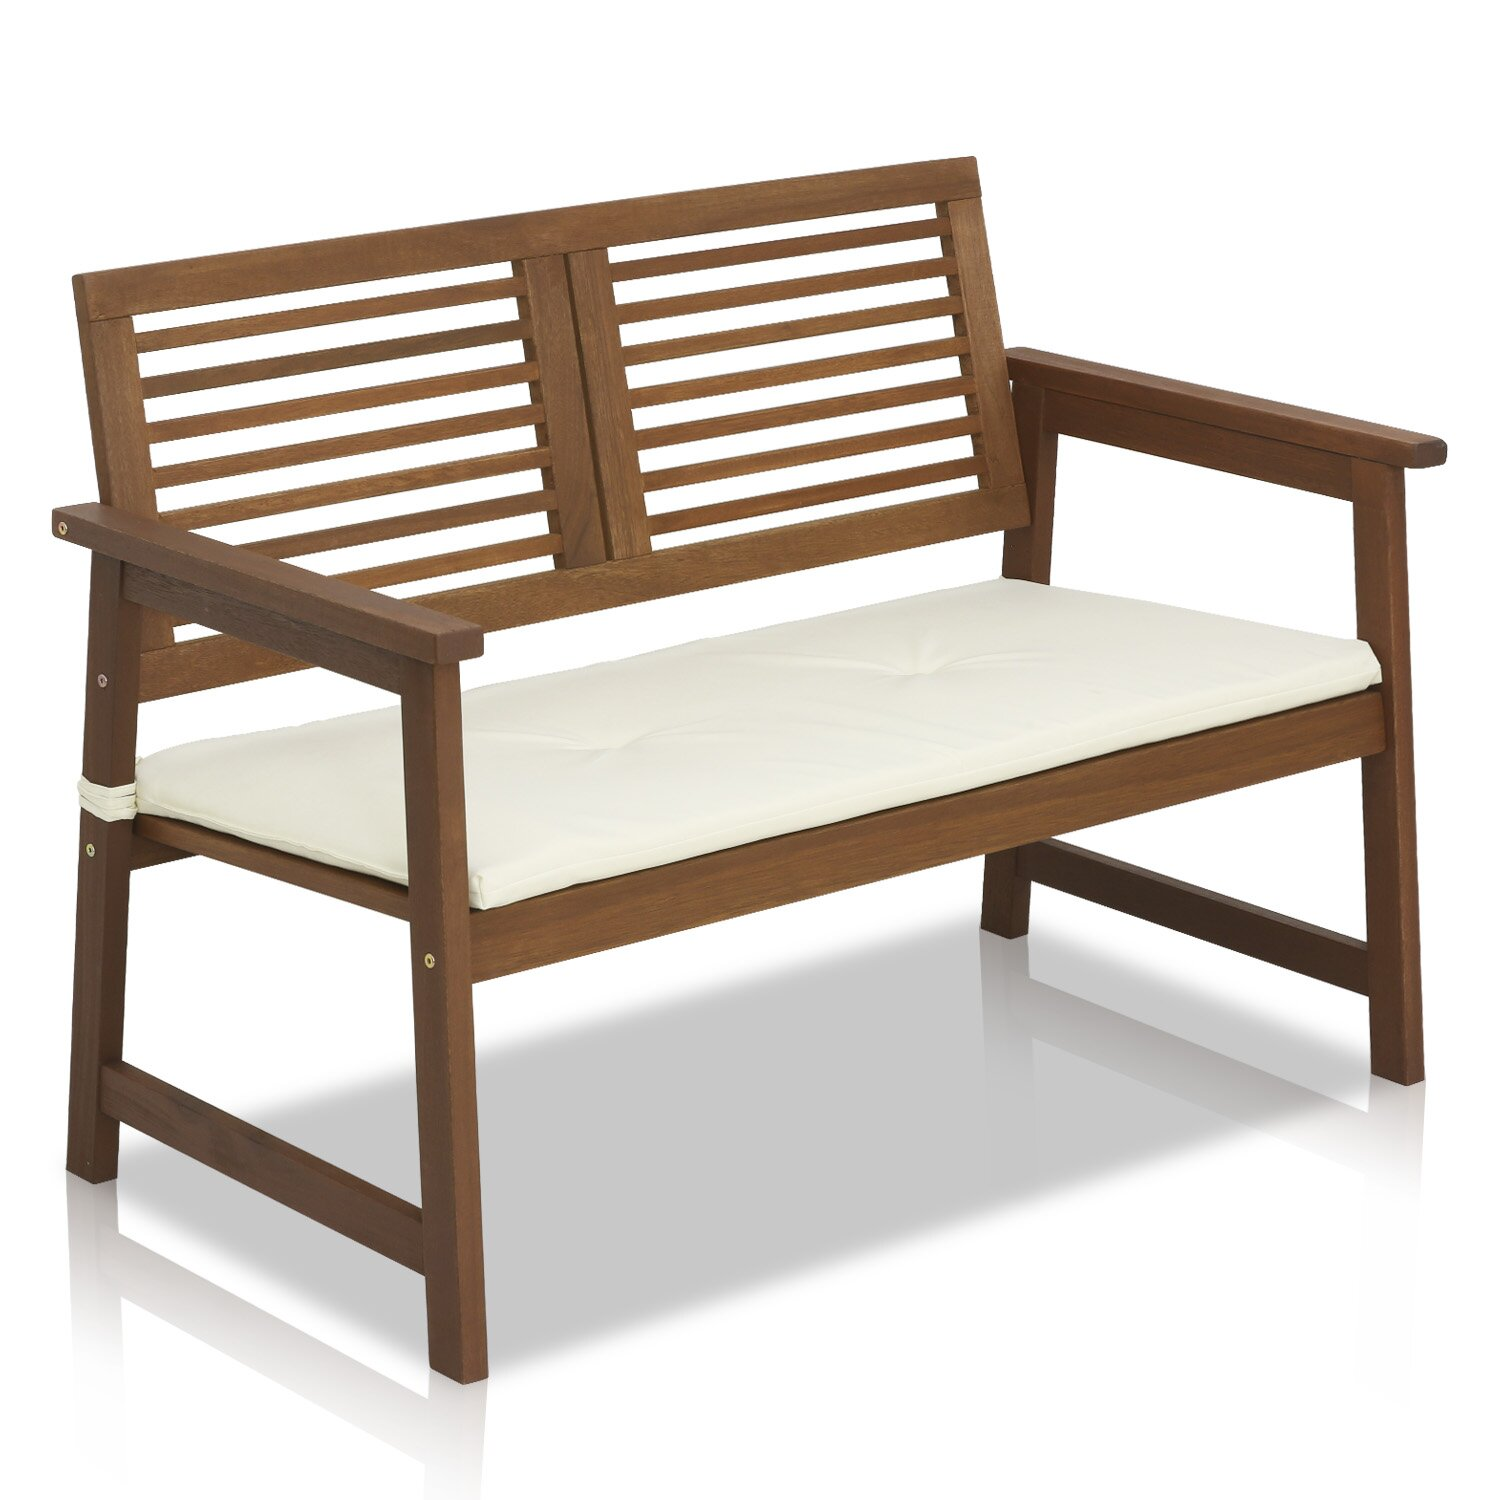 Furinno Tioman Teak Garden Bench With Cushion Reviews